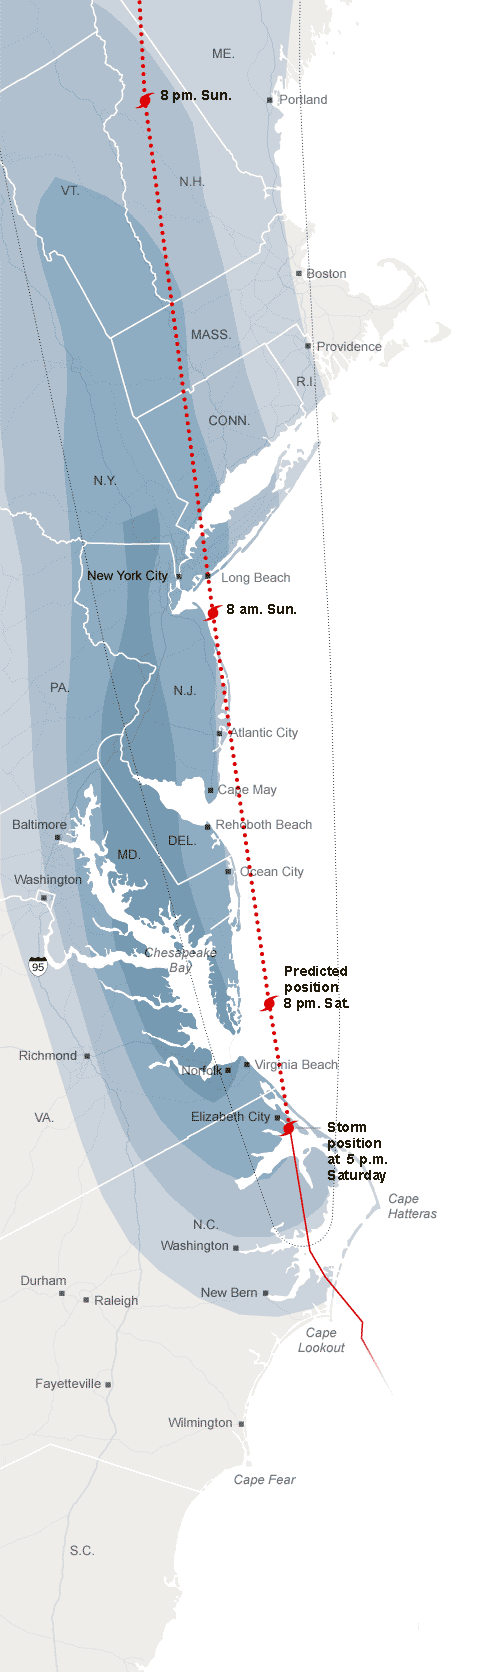 https://i1.wp.com/graphics8.nytimes.com/packages/images/newsgraphics/2011/0827-irene-damage-reports/storm-map.png